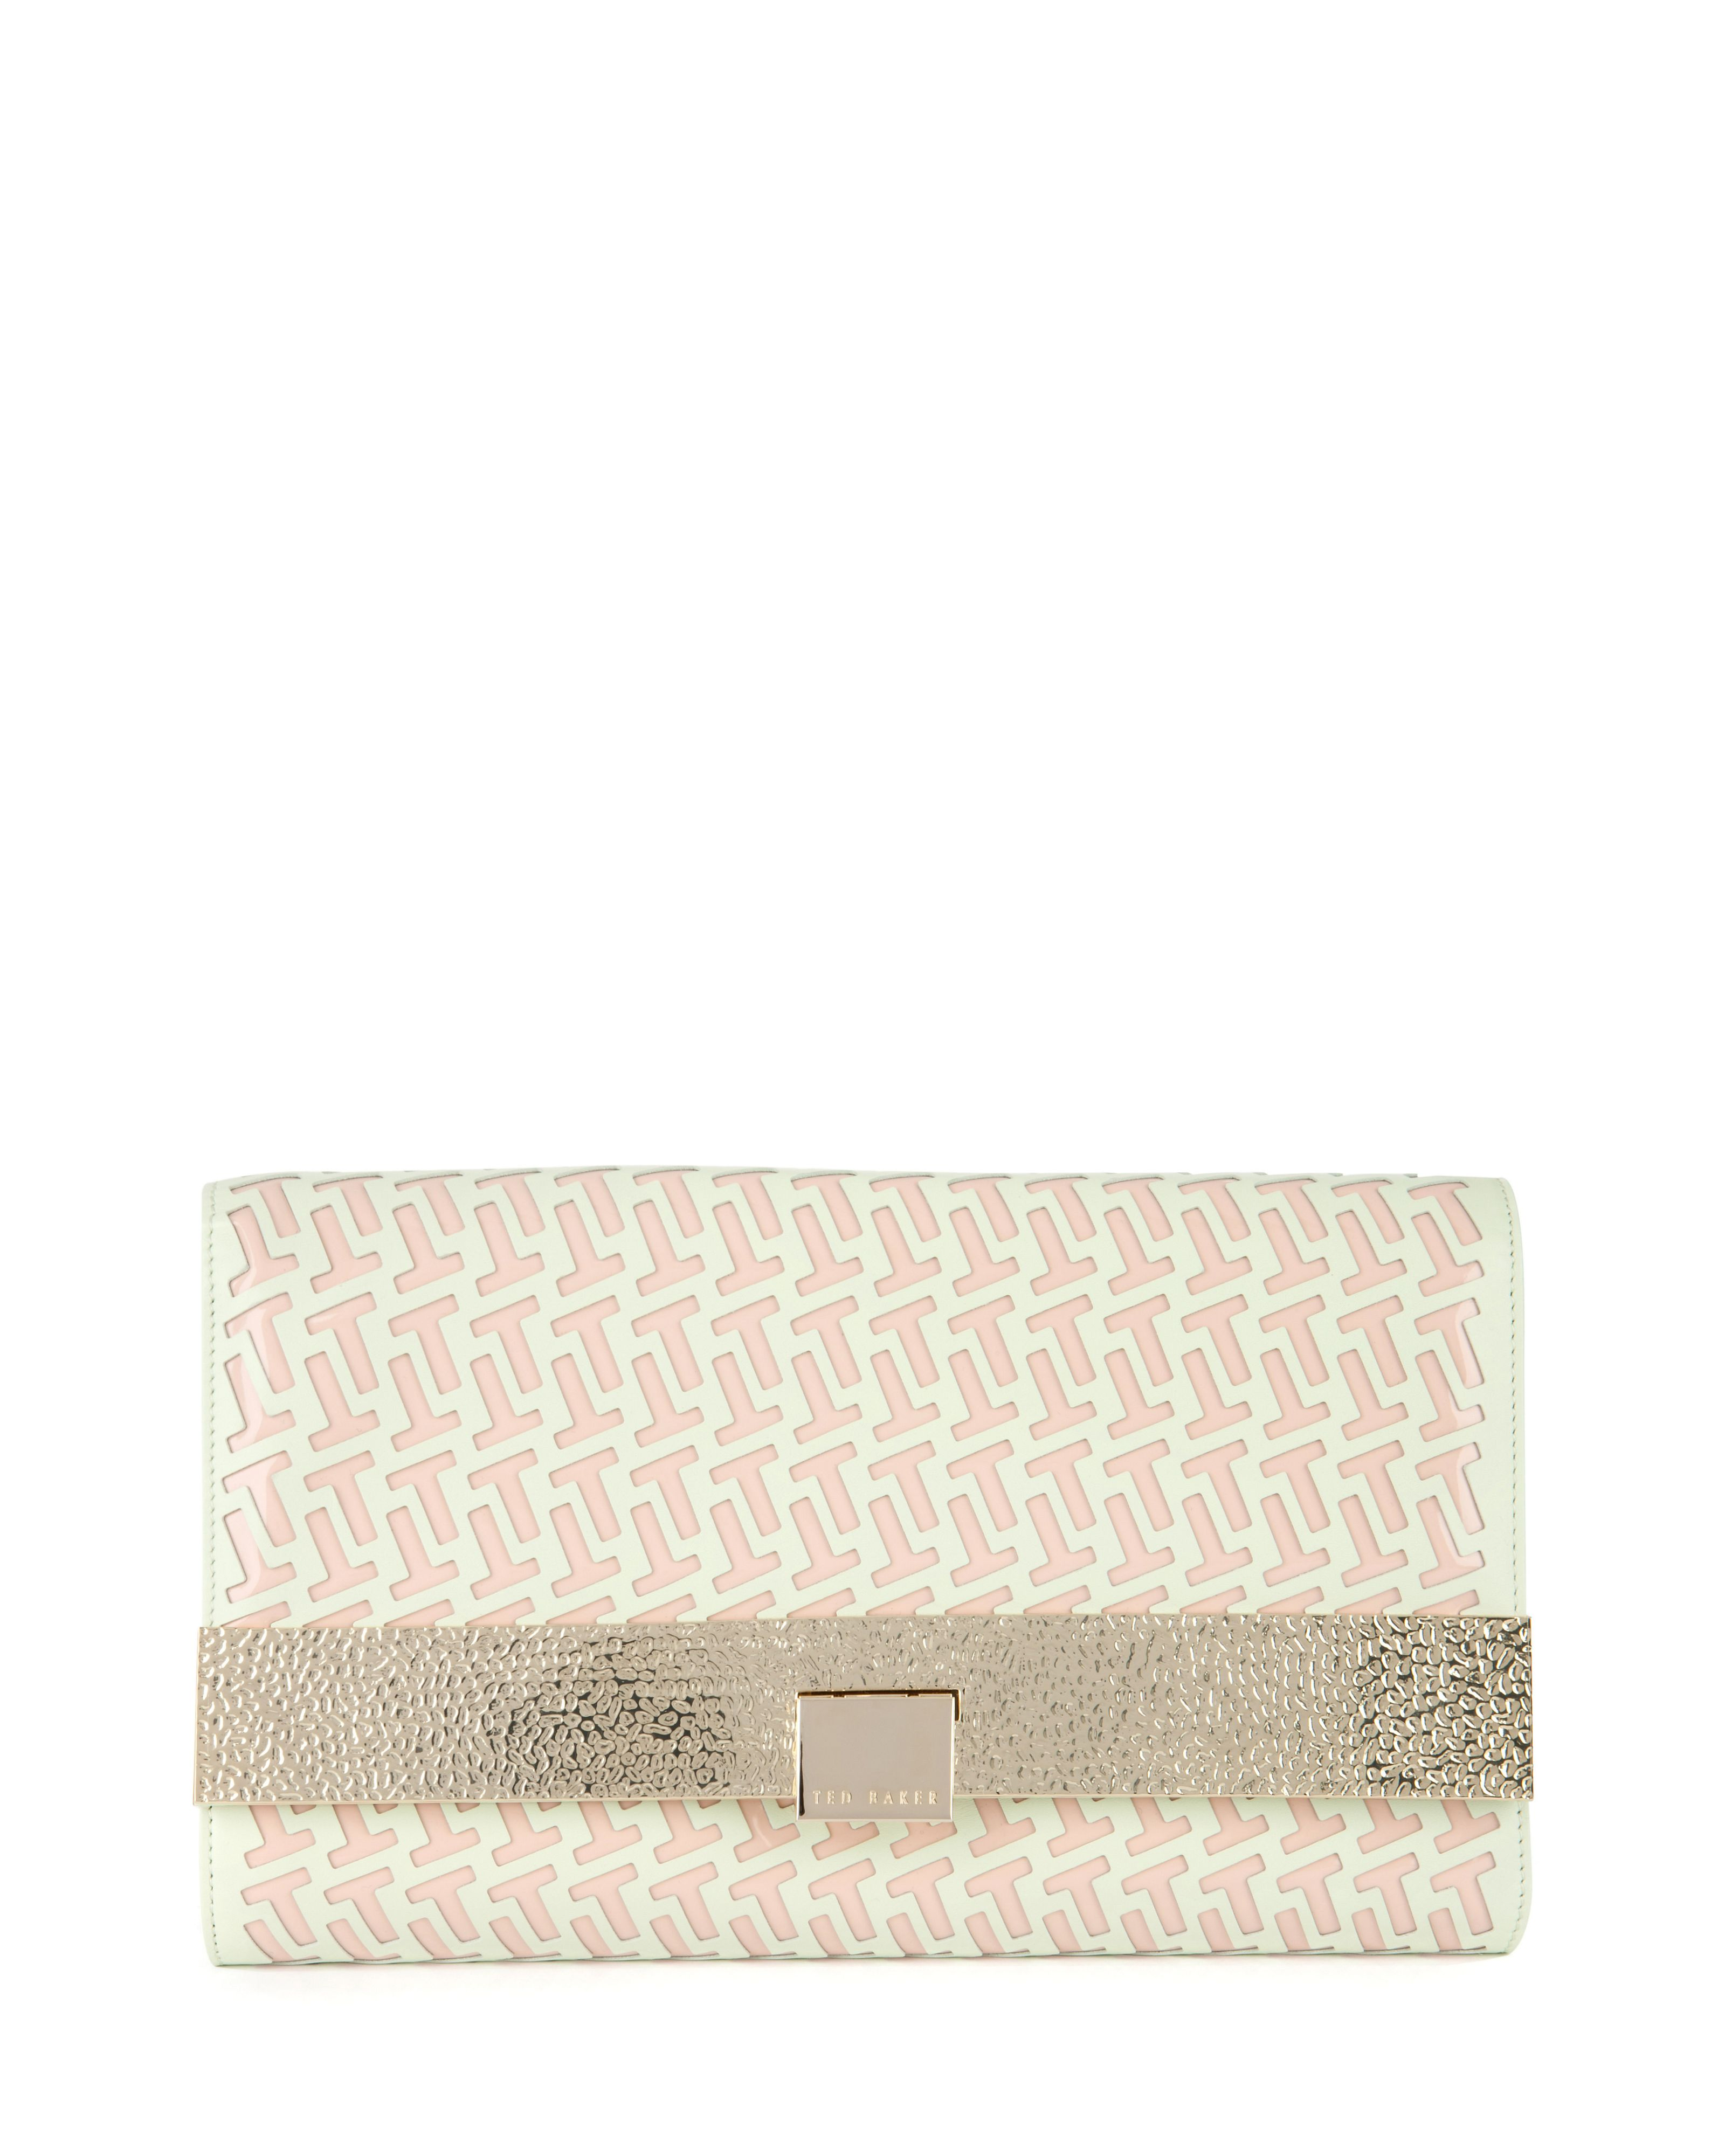 Stallar leather laser cut clutch